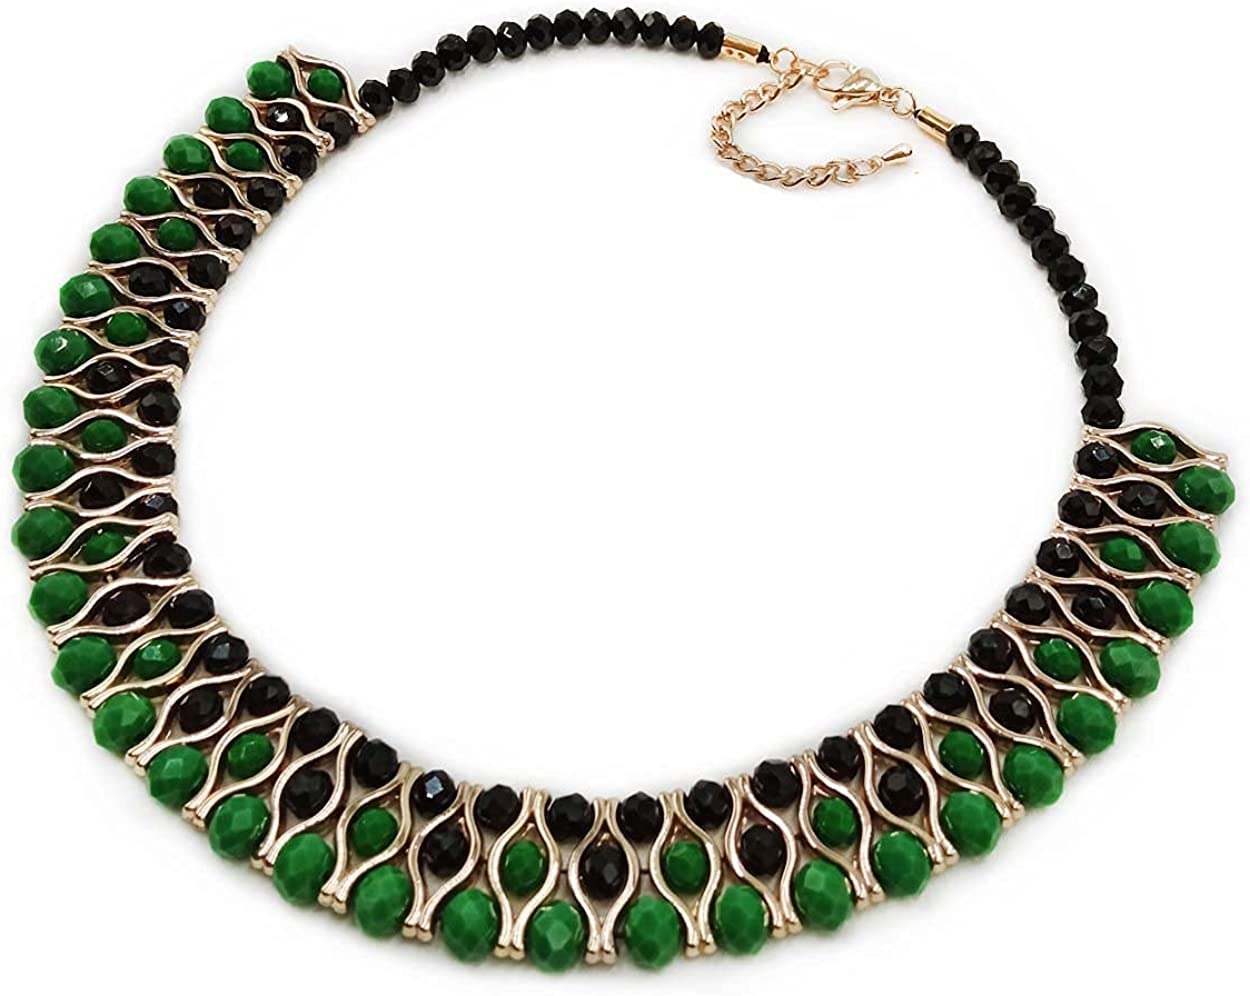 PLYOU Crystal Statement Necklace Rhinestone Collar Choker with Extension Chain Jewelry Gifts for Women Girls (Black&Jade)